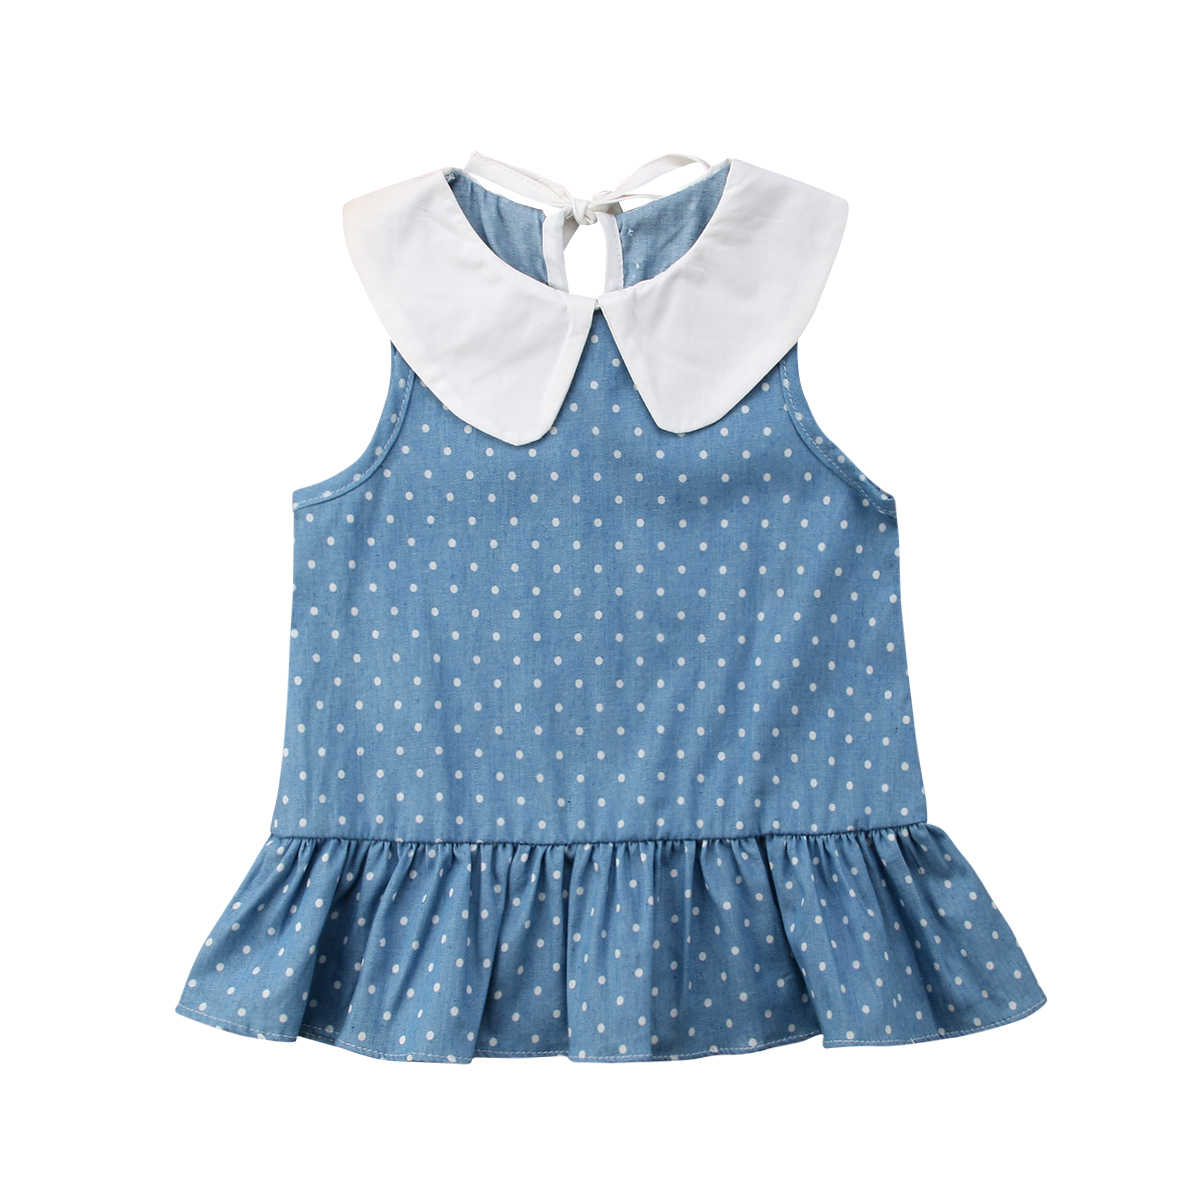 Summer Kid Girl Clothes School Style Outfits Dress Casual Party Princess  Dresses Cute Sailor Sollar Ball Gown Mini Dresses